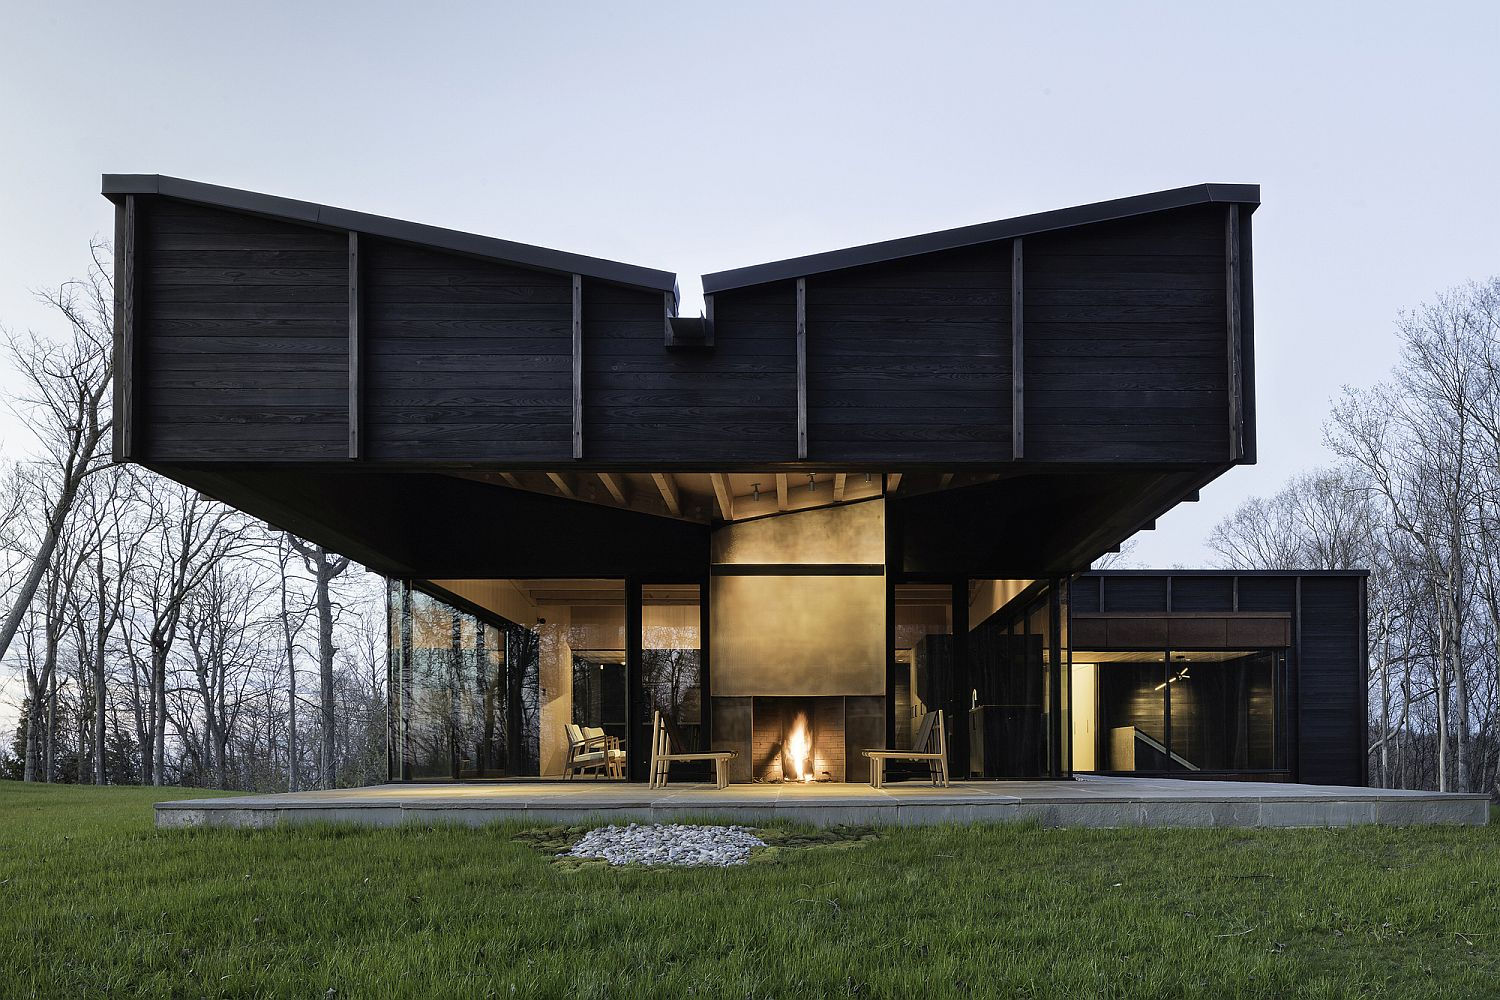 Cantilevered structure of the modern house gives it a distinct facade